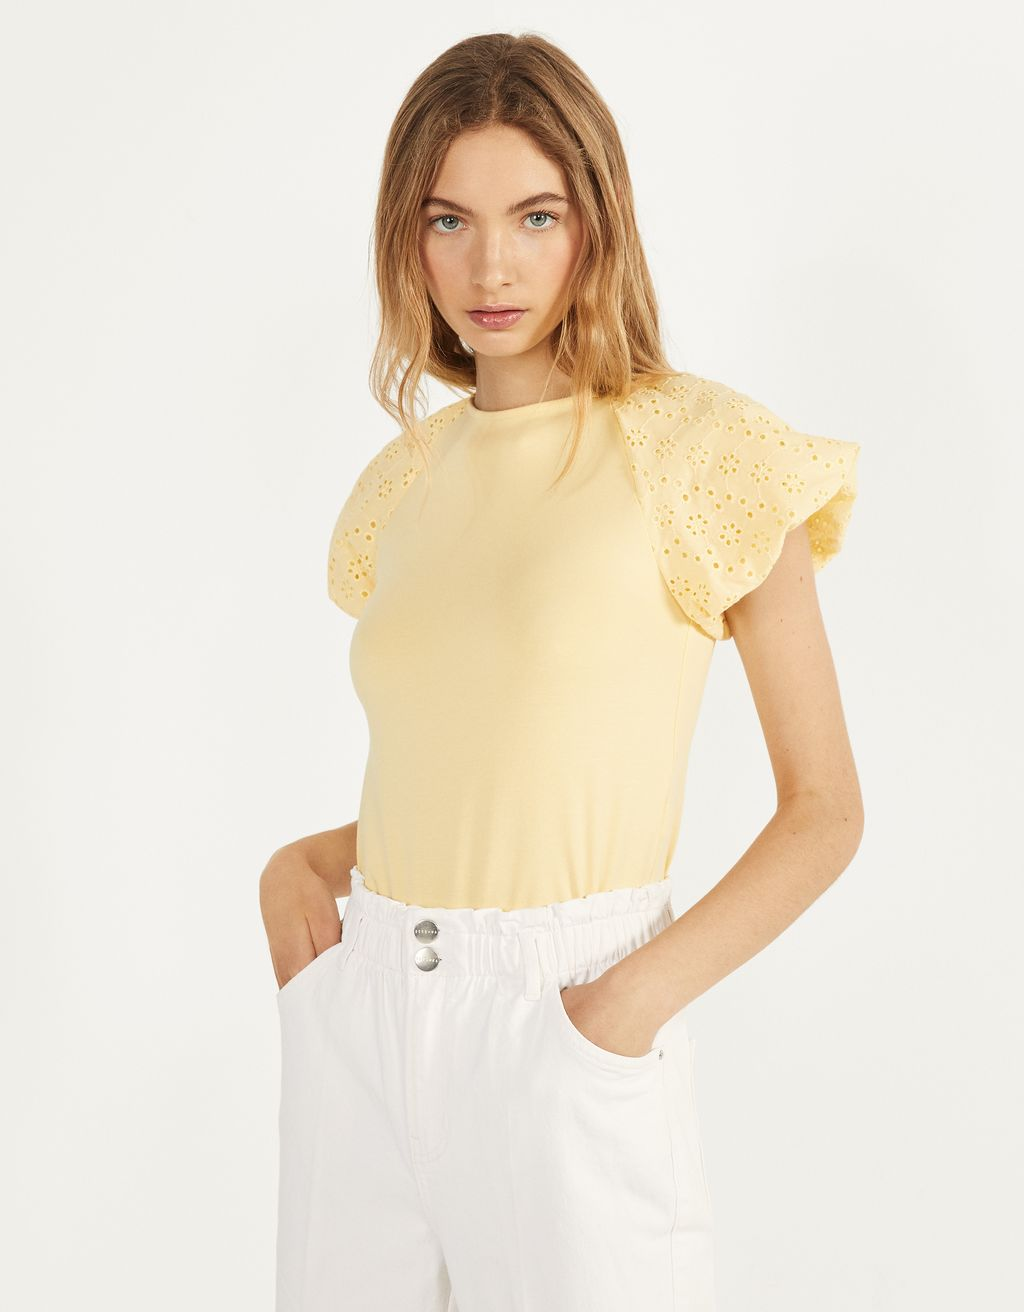 Swiss-embroidered top